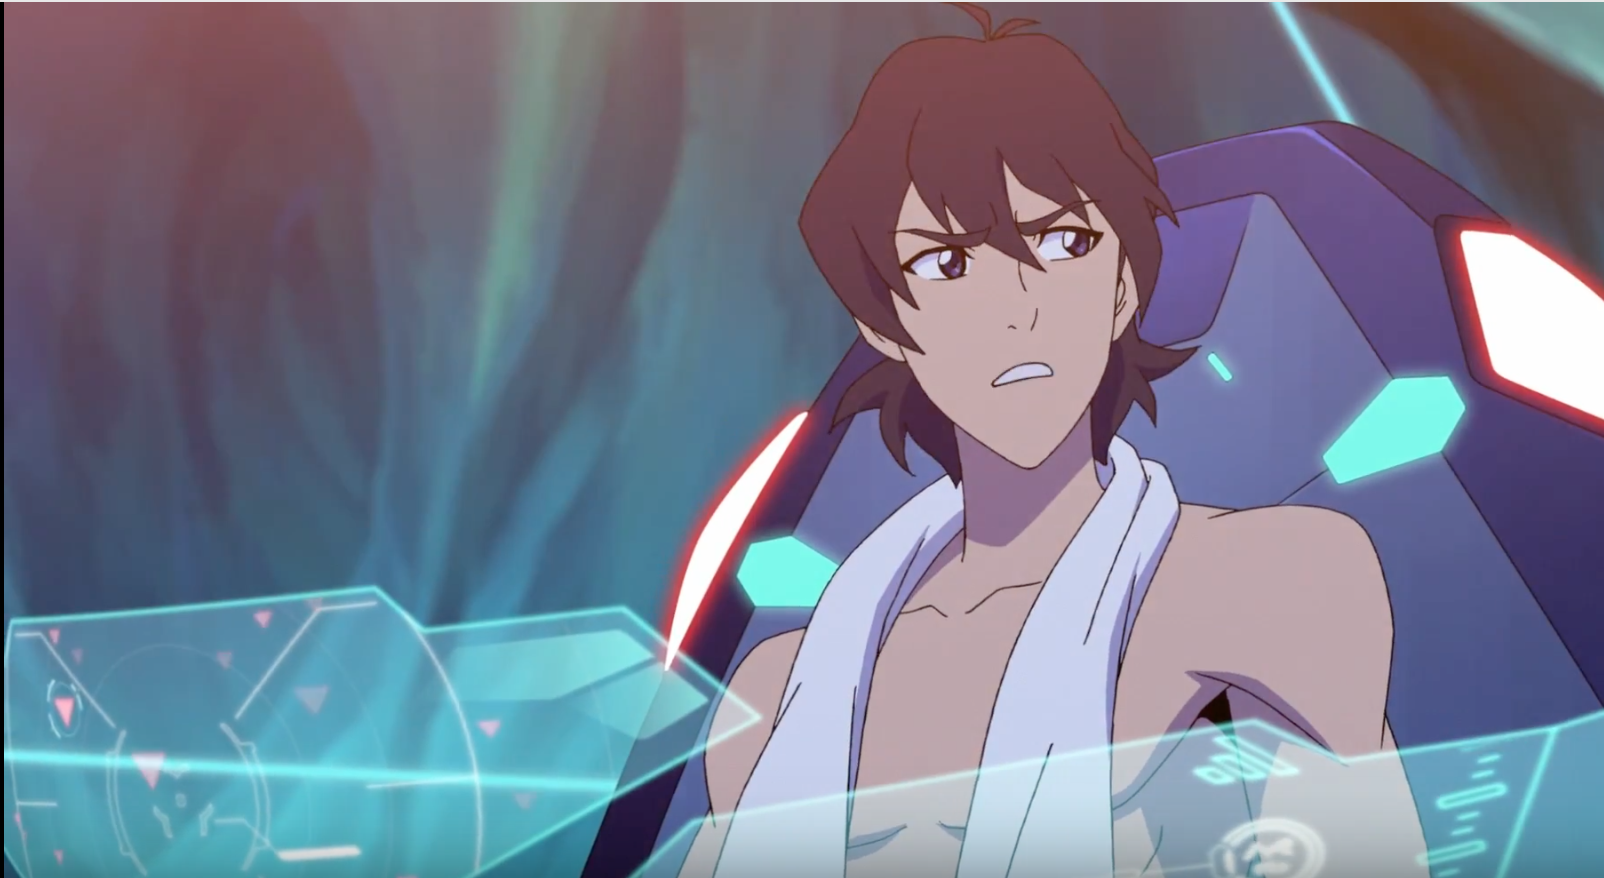 Keith shirtless from Voltron Legendary Defender season 2